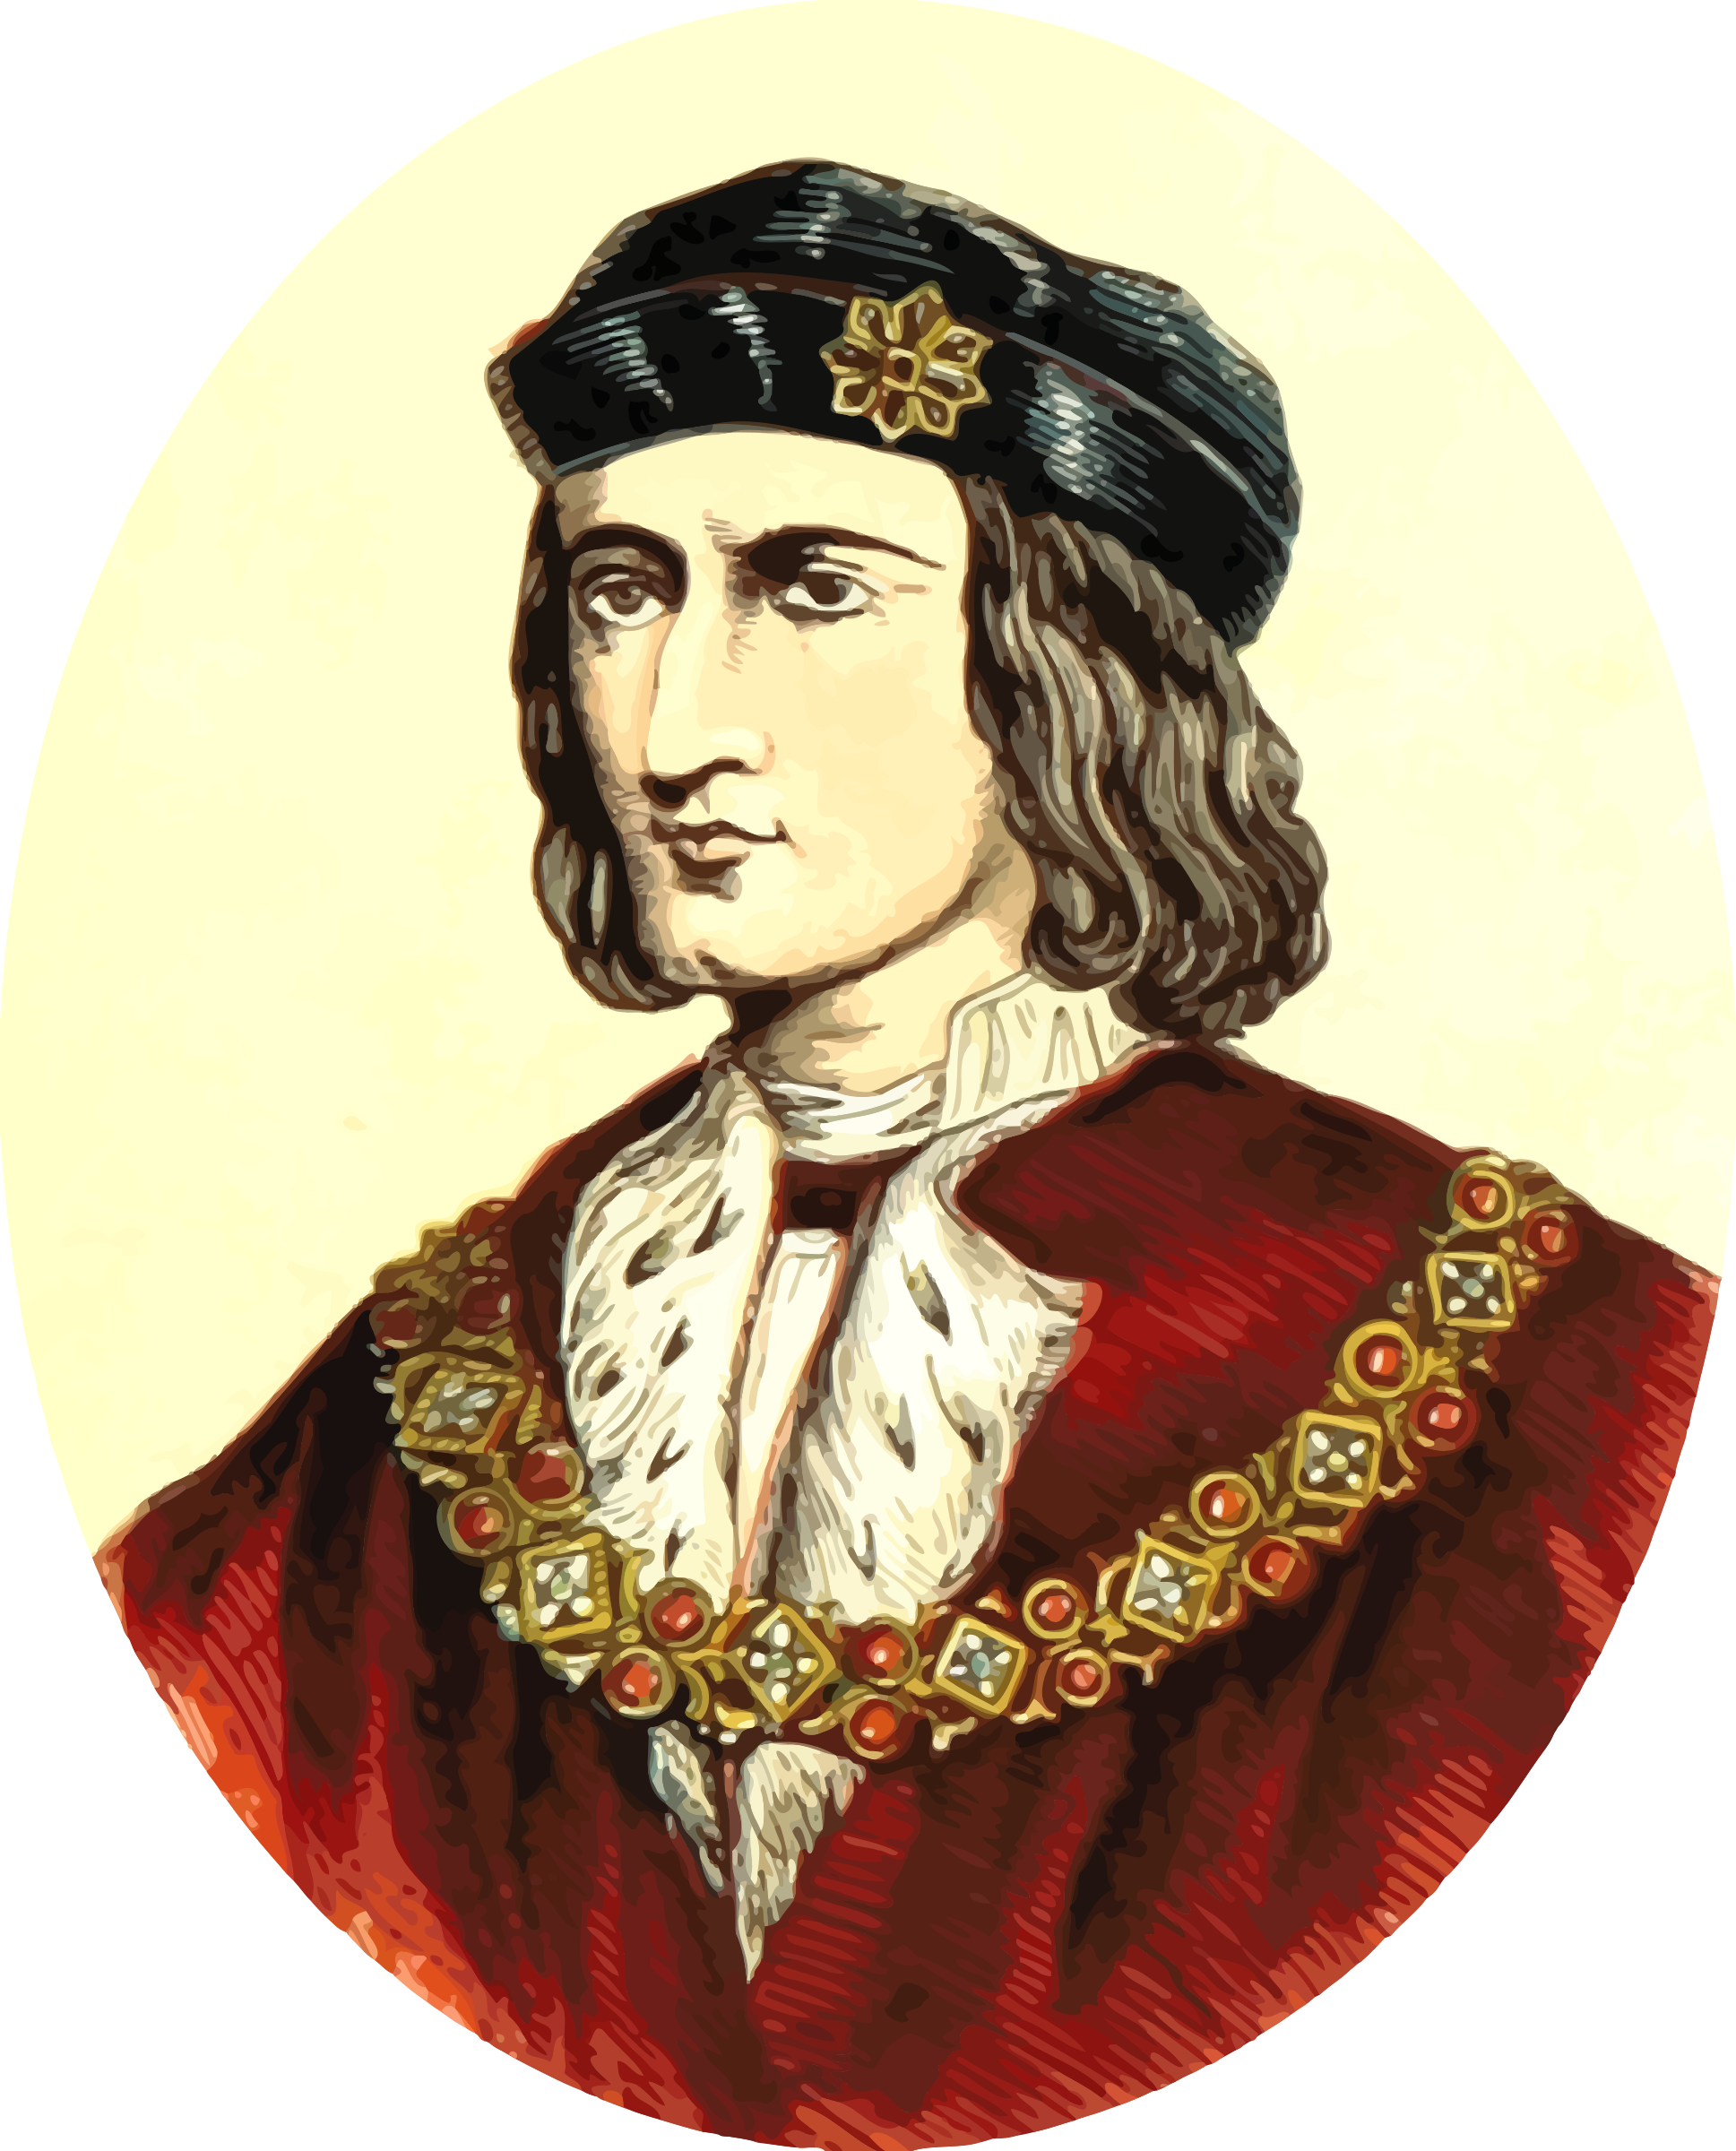 King Richard III by Firkin